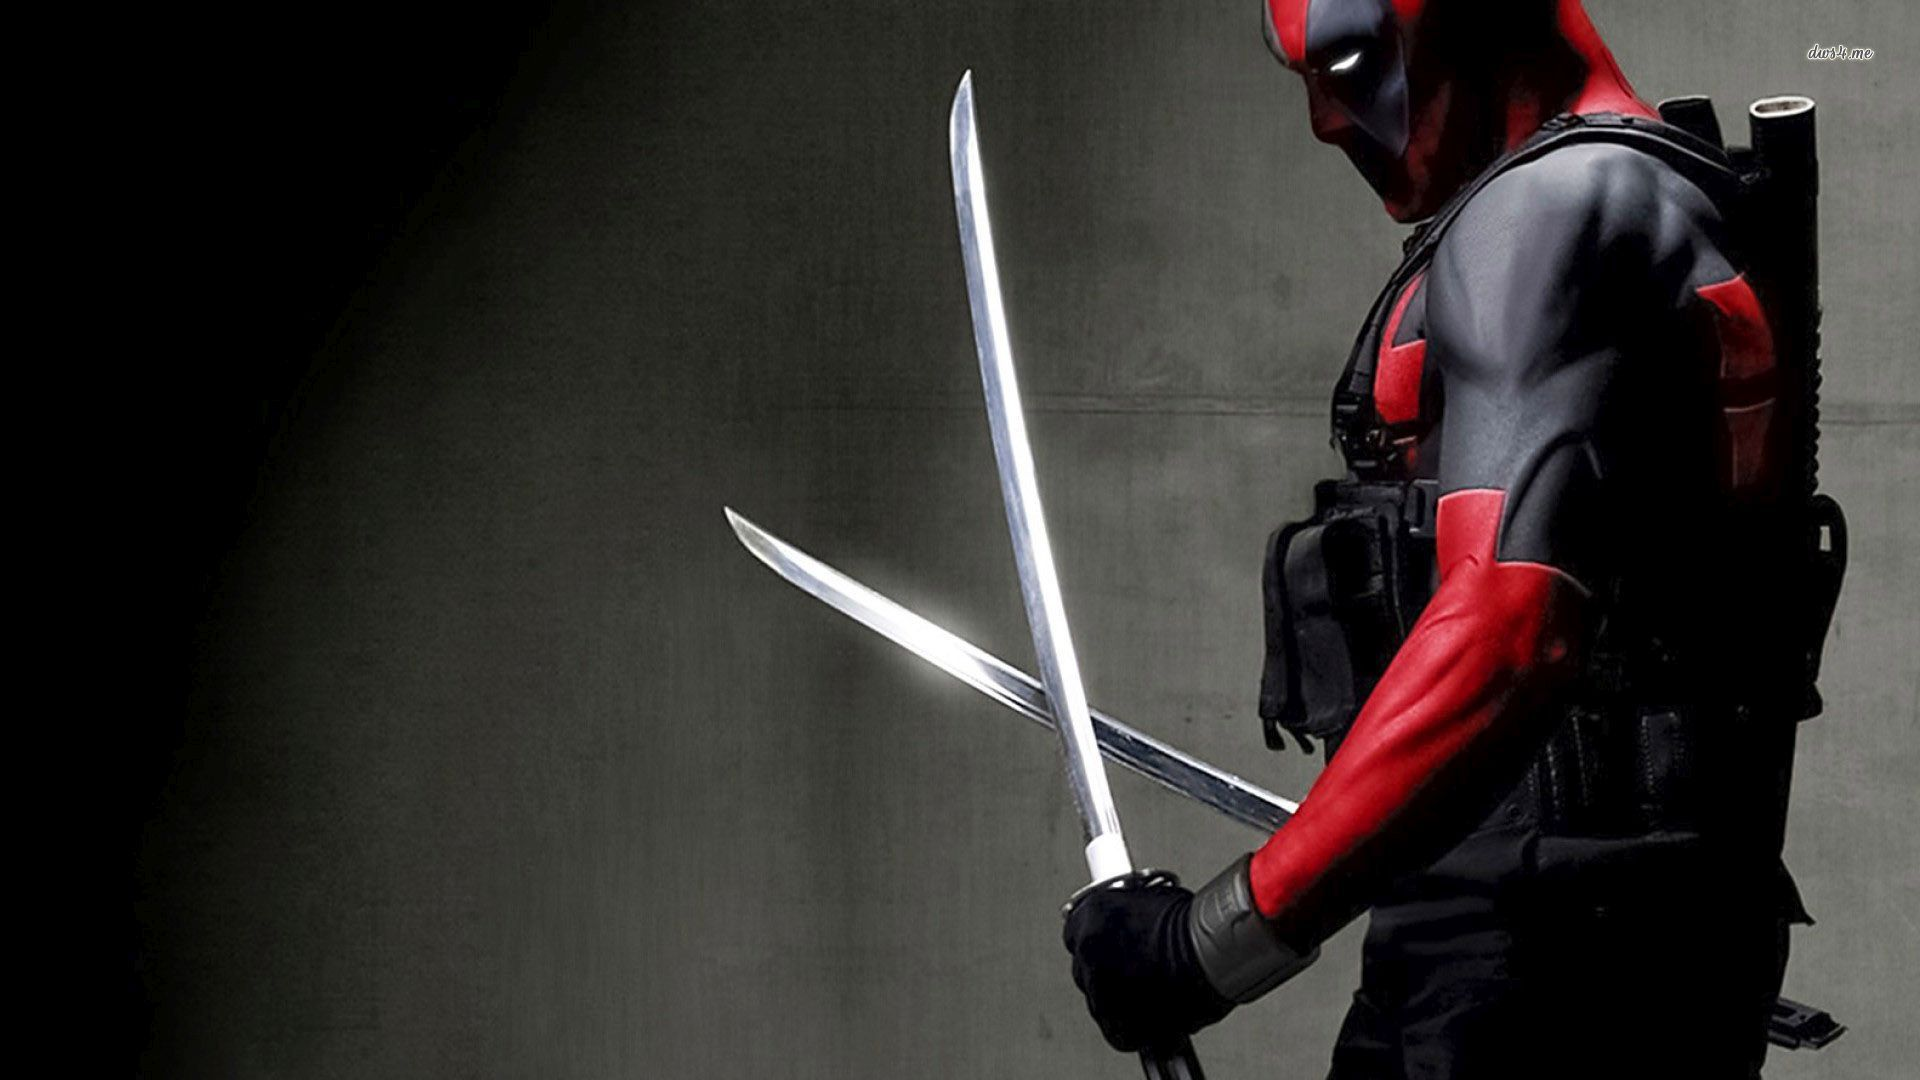 4k deadpool wallpaper wallpapersafari for Deadpool wallpaper 1920x1080